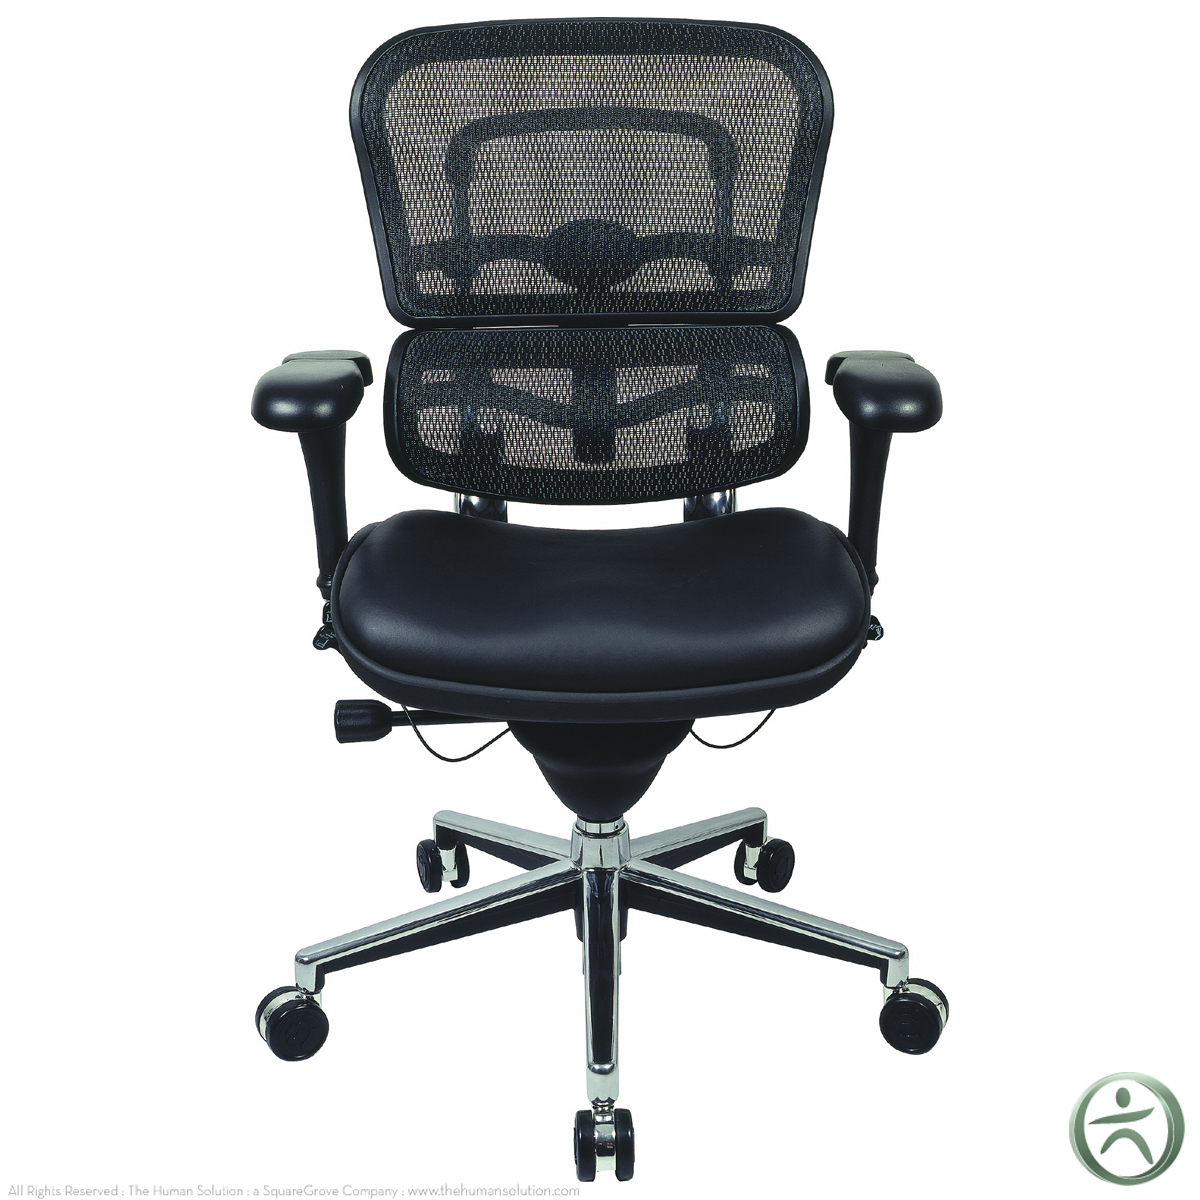 raynor ergohuman chair light grey accent with arms mesh leather seat